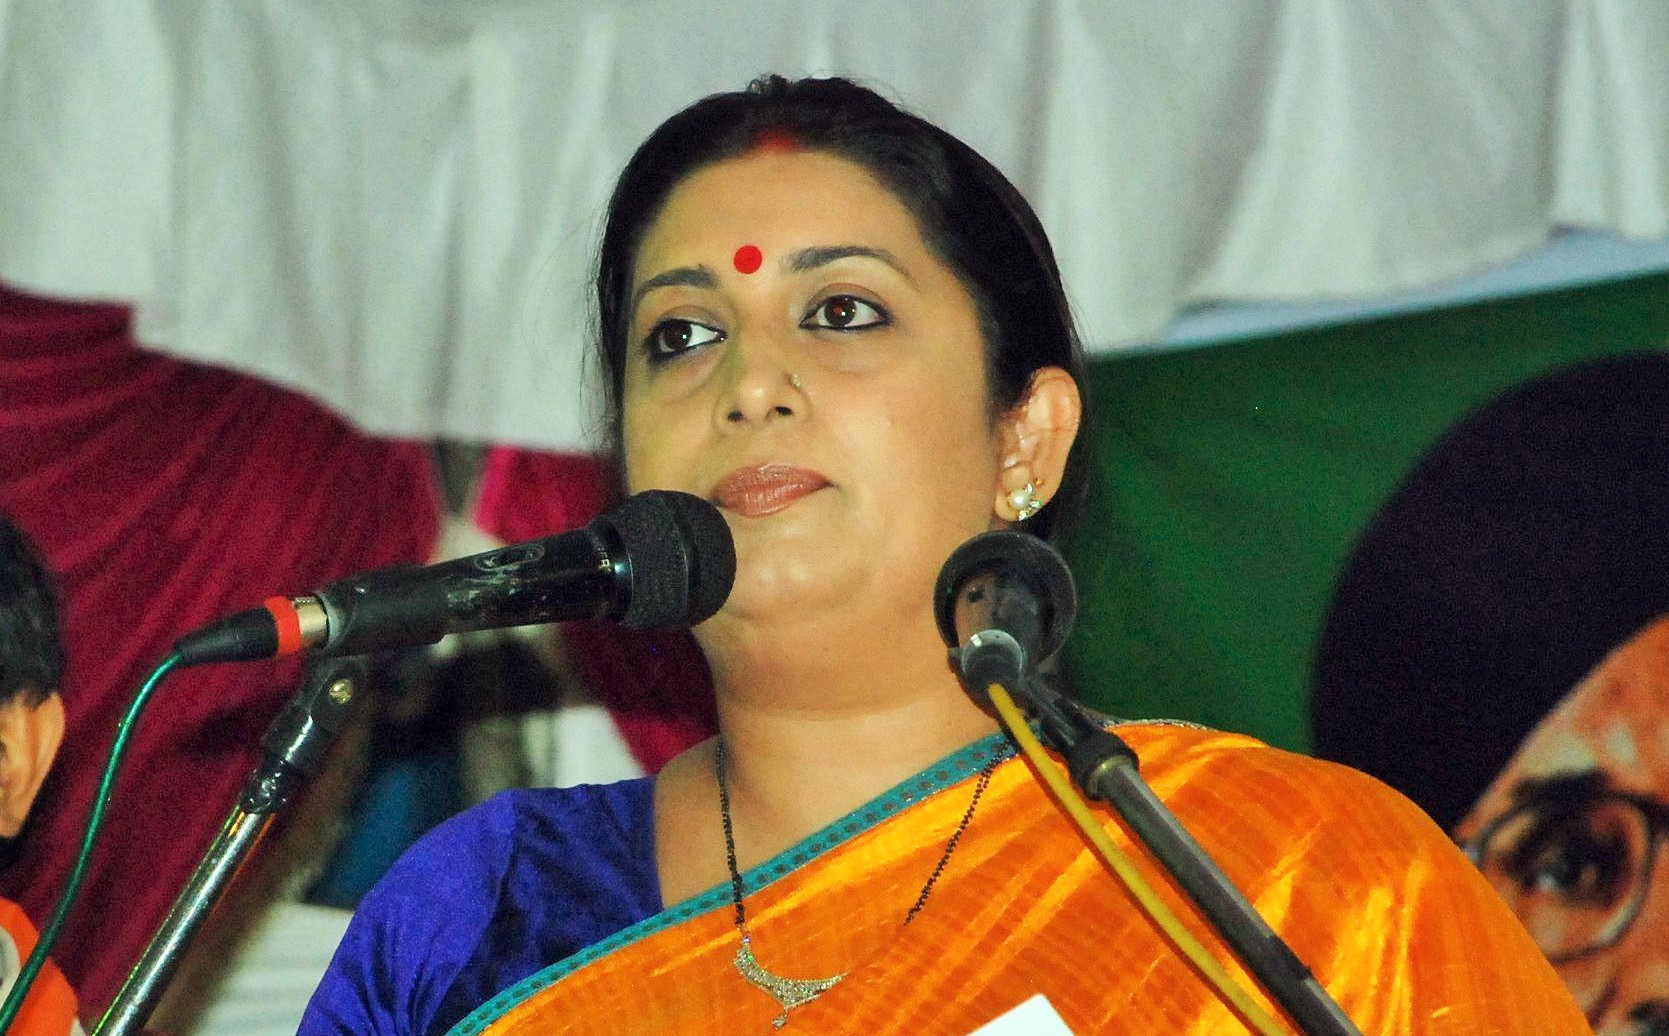 Actress-turned-BJP Parliamentarian Smriti Irani addresses during a Shiromani Akali Dal rally at Rajouri Garden in New Delhi on Nov.27, 2013. Bharatiya Janata Party (BJP) and the Shiromani Akali Dal have finally agreed to a seat-sharing formula for the upcoming Delhi assembly elections slated for 4th December. (Photo: IANS)